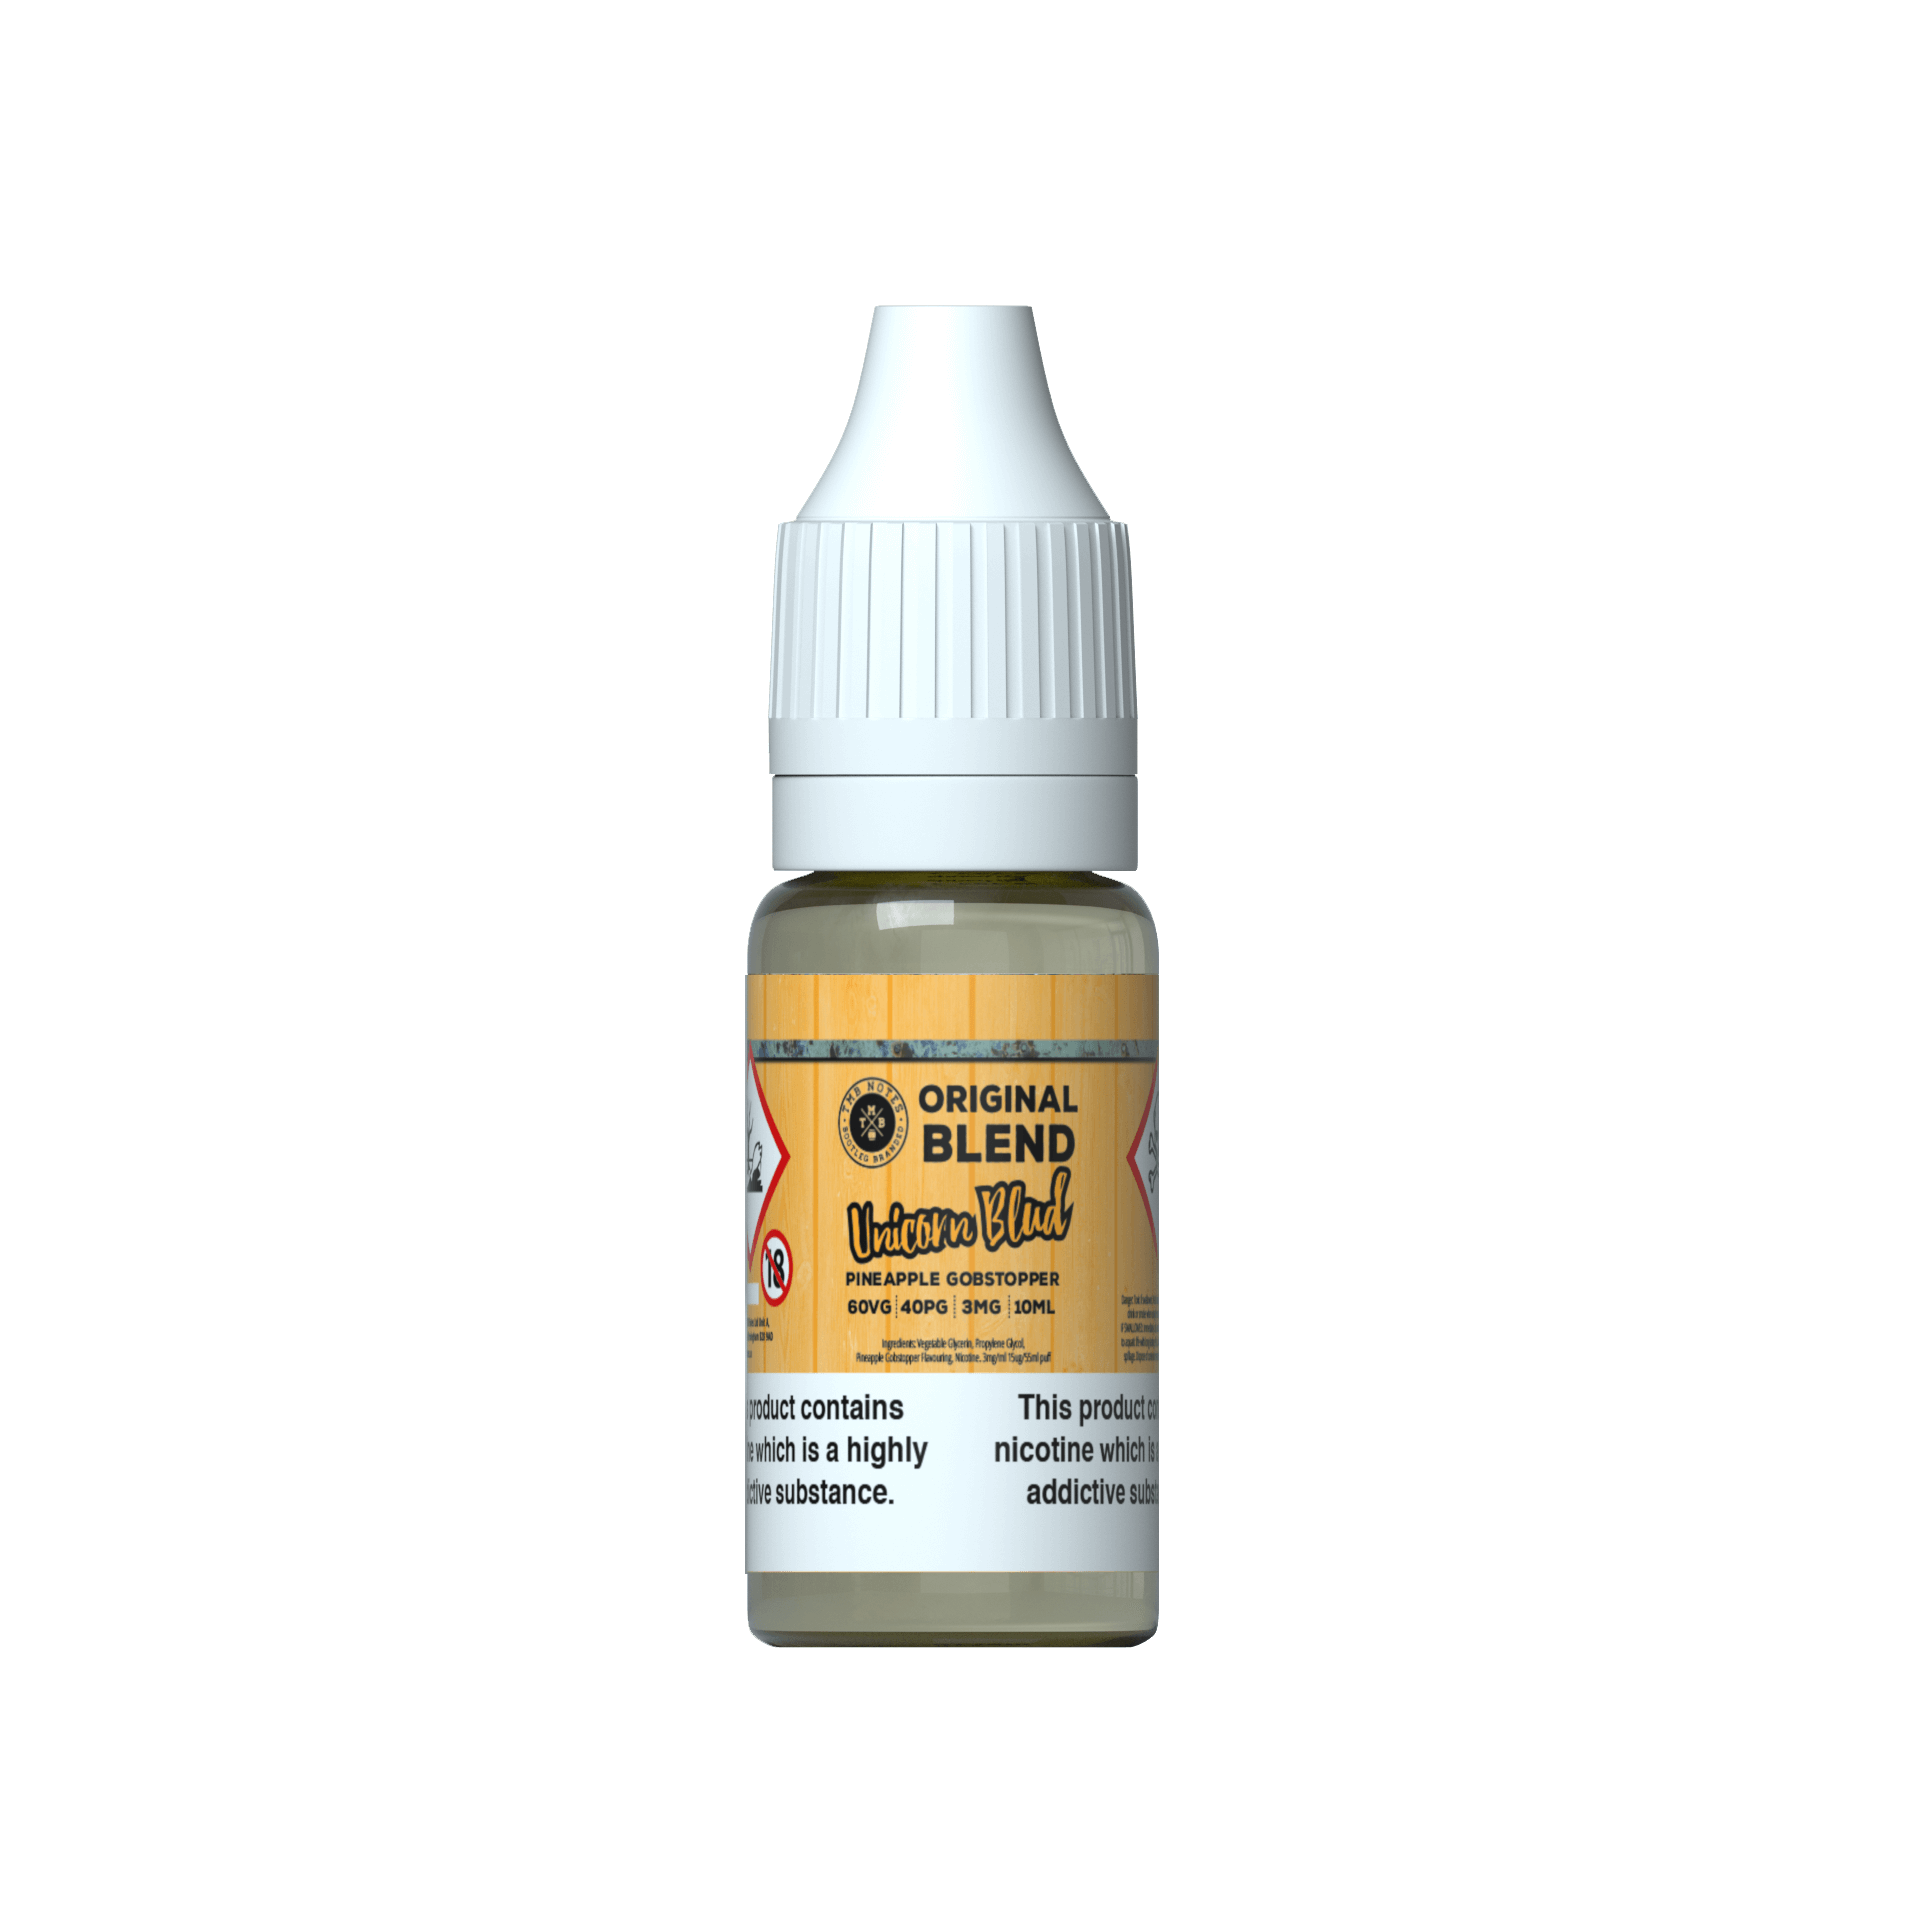 Unicorn Blud 10ml Original Blend